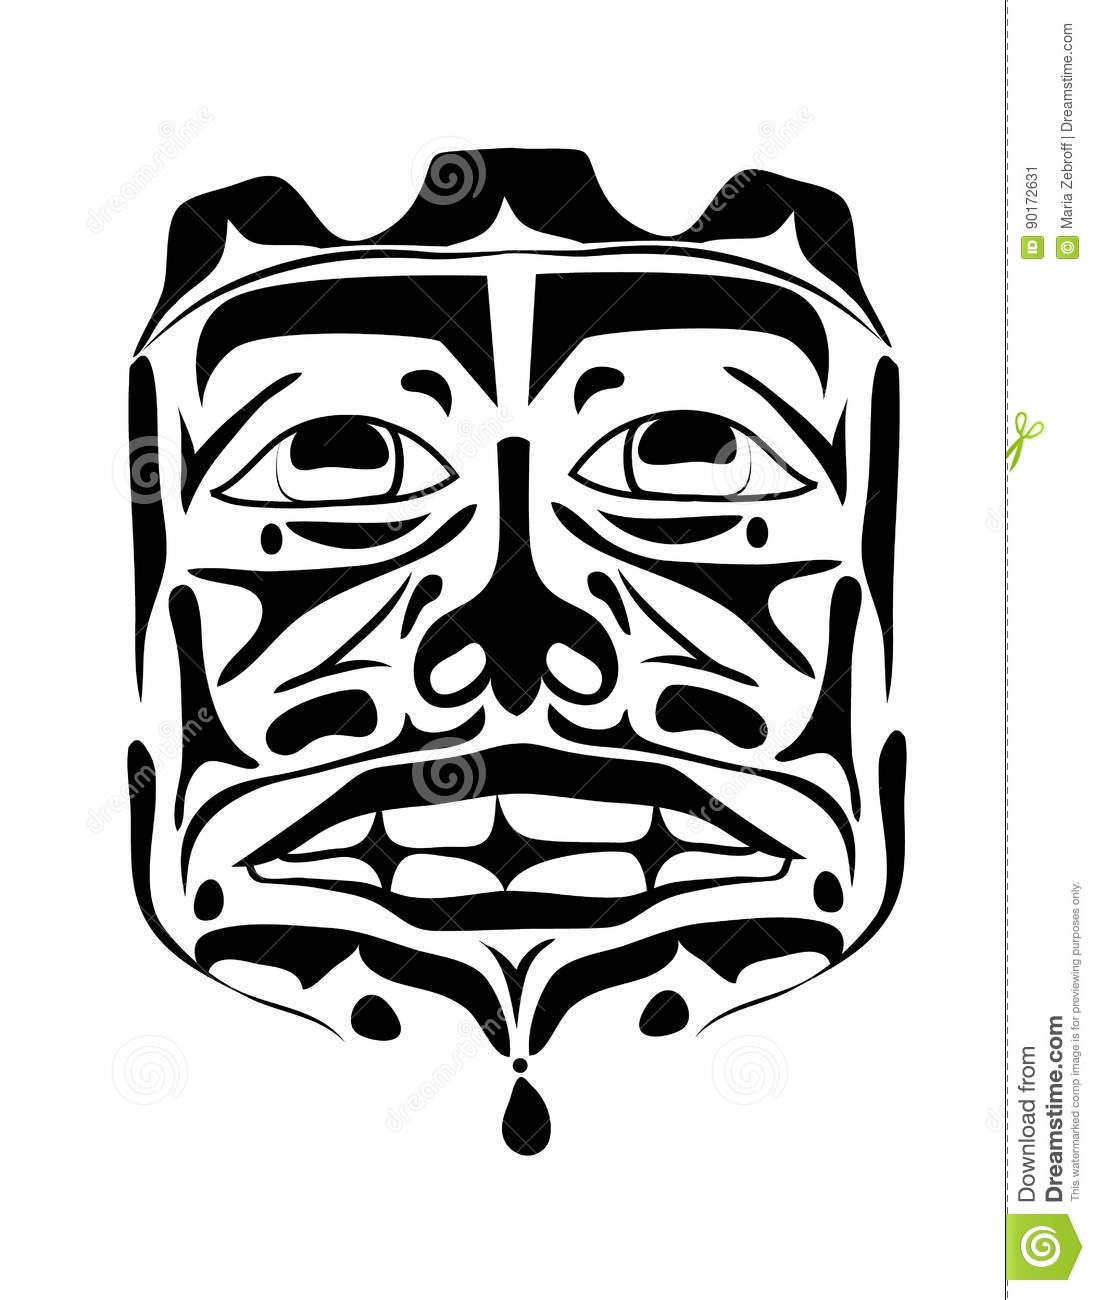 Vector Illustration Of The Face Symbol Stock Vector